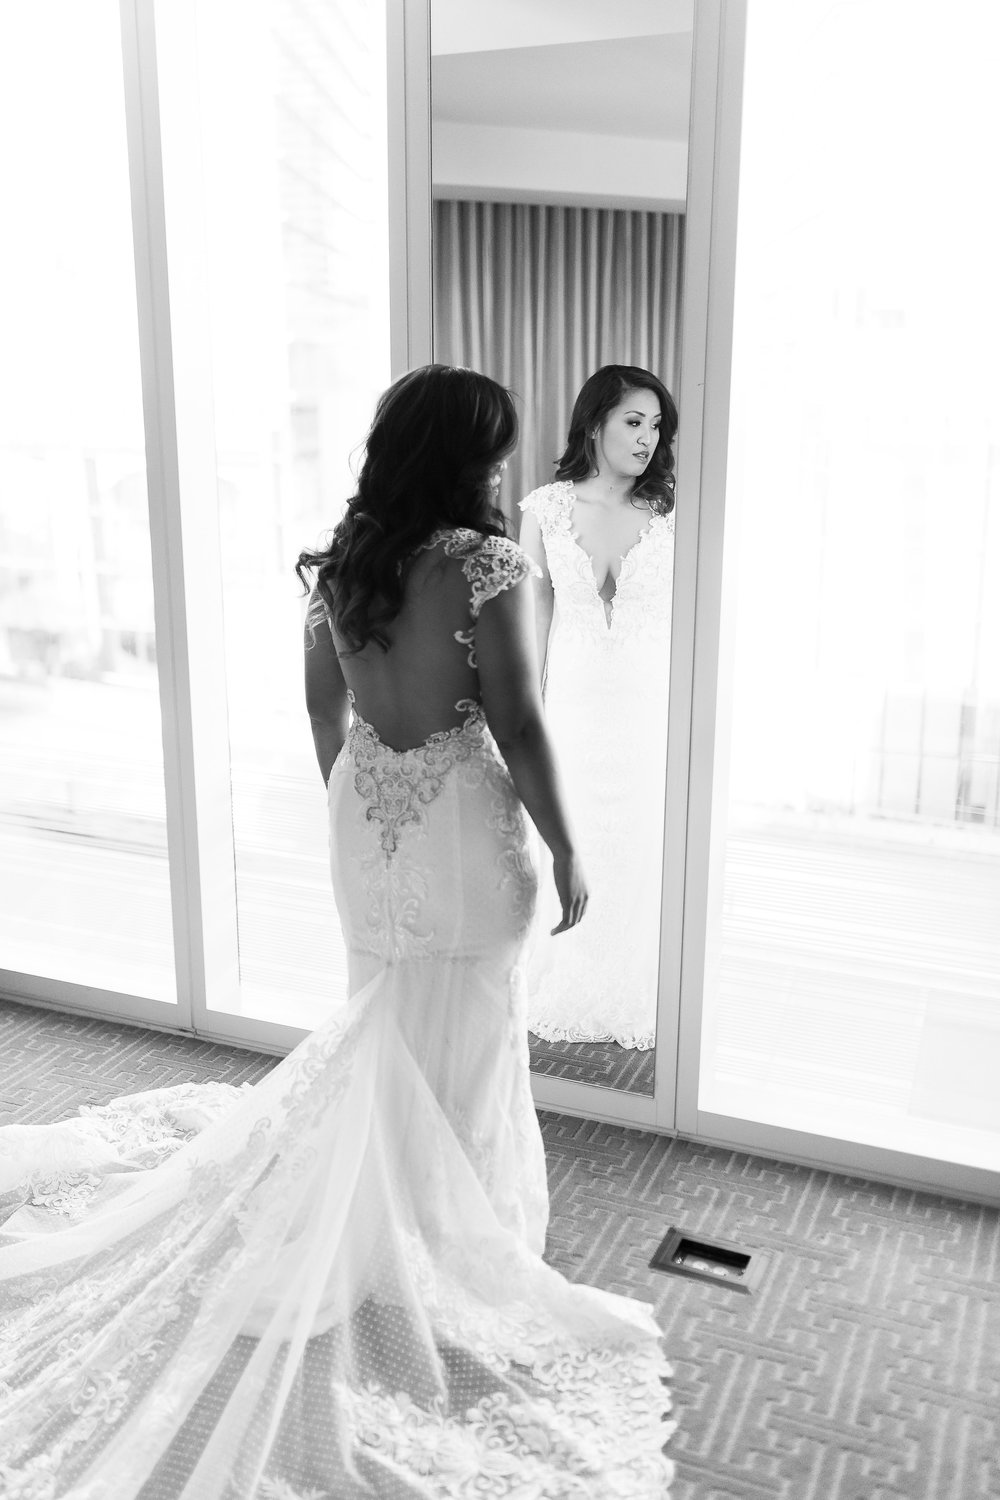 Bride in backless lace wedding dress.  Wedding Planner:  Andrea Eppolito Events  |   Photography  Brian Leahy   |  Videography  HOO Films   |  Venue & Catering:  Mandarin Oriental  / Waldorf Astoria |  Floral & Decor:  Destinations by Design    |  Lighting:  LED Unplugged  |  Music:  DJ Breeze II   |  Hair & Make Up:  Amelia C & Co   |  Invitations by  Bliss & Bone   |  Menu and Escort Cards by  Meldeen